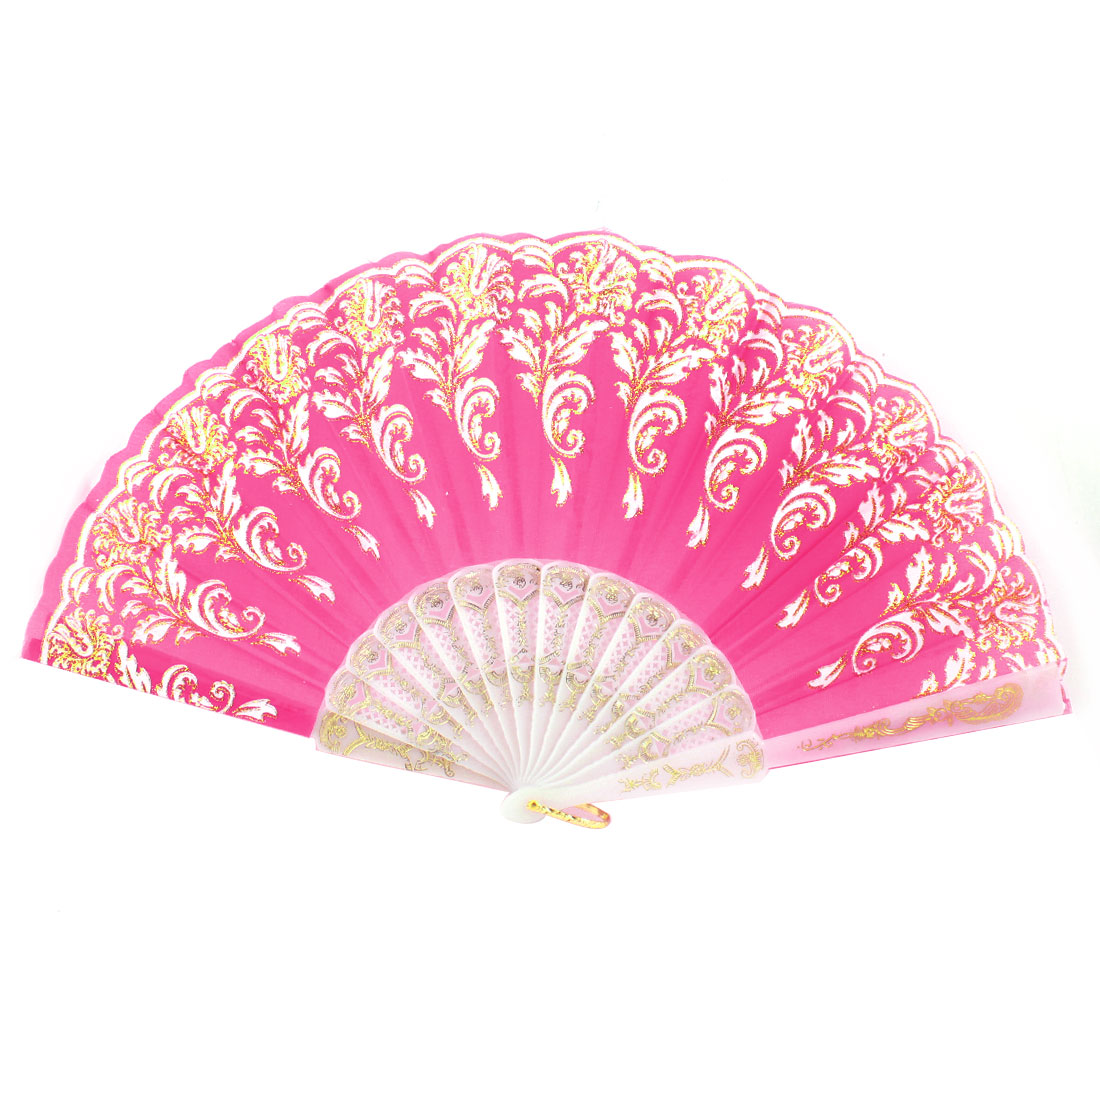 Plastic Hollow out Rib Gold Tone Glittery Powder Detail Flower Pattern Dancing Hand Fan Fuchsia White